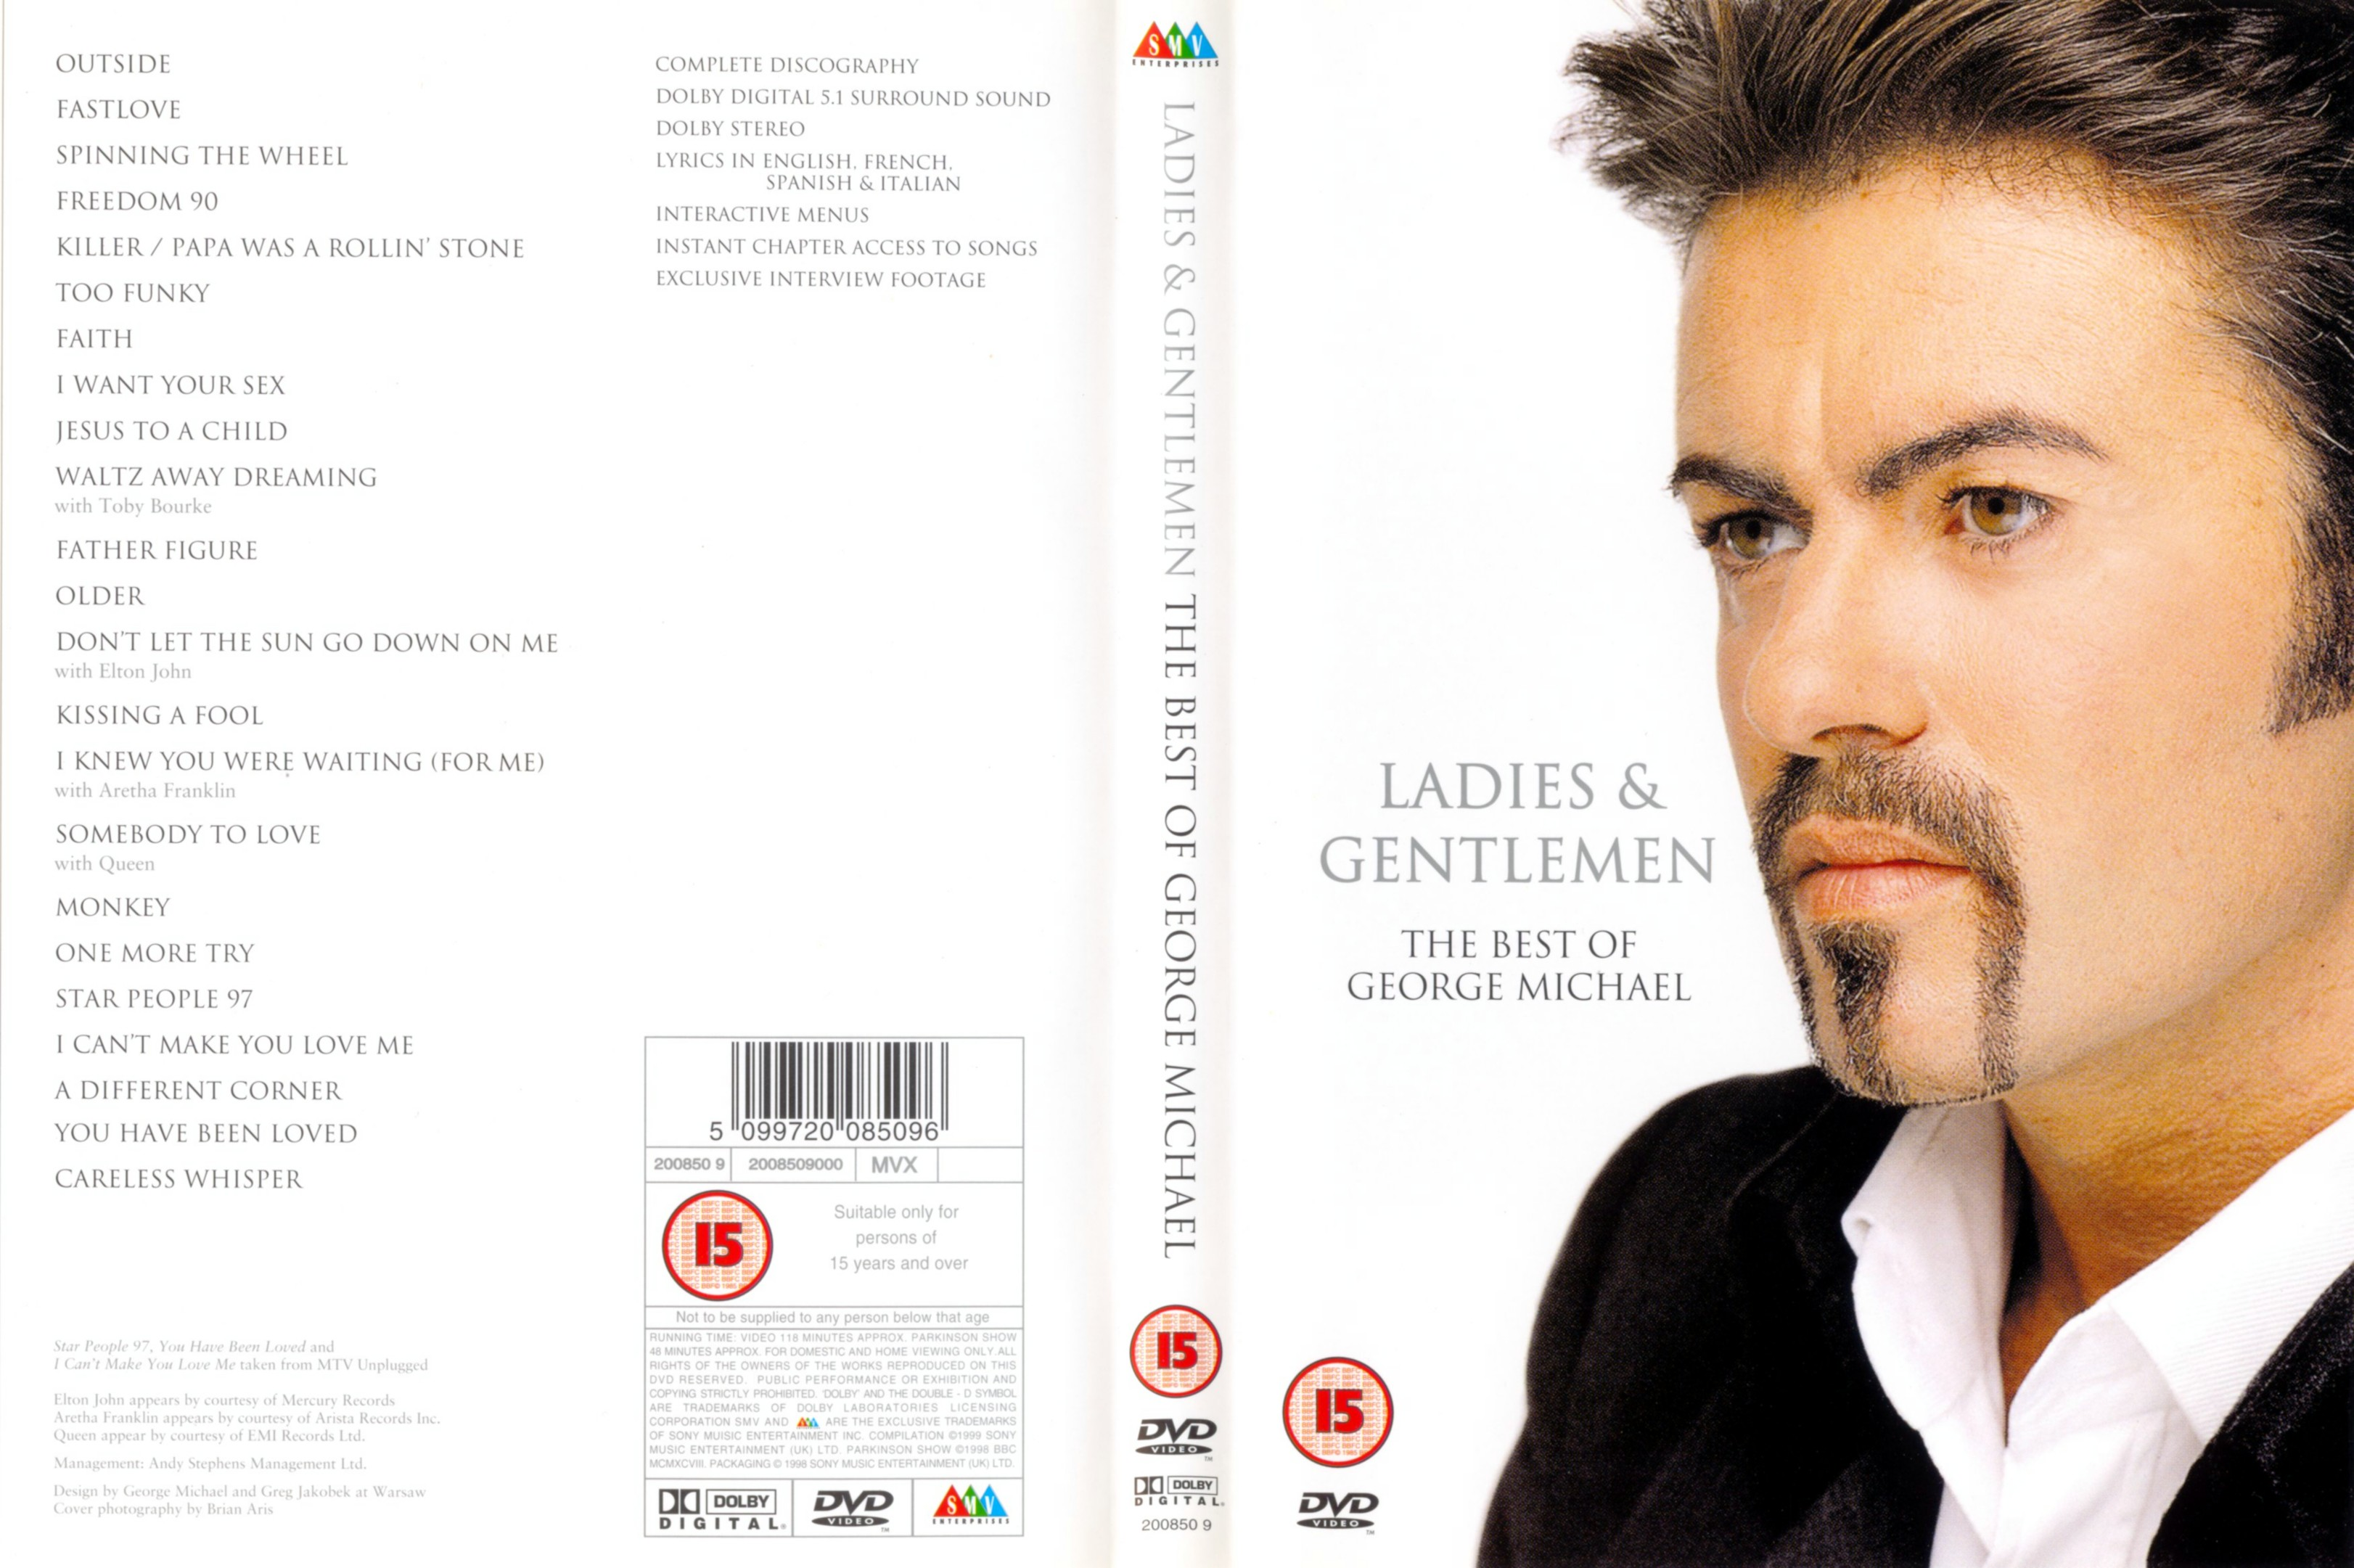 Jaquette DVD George Michael The Best Of